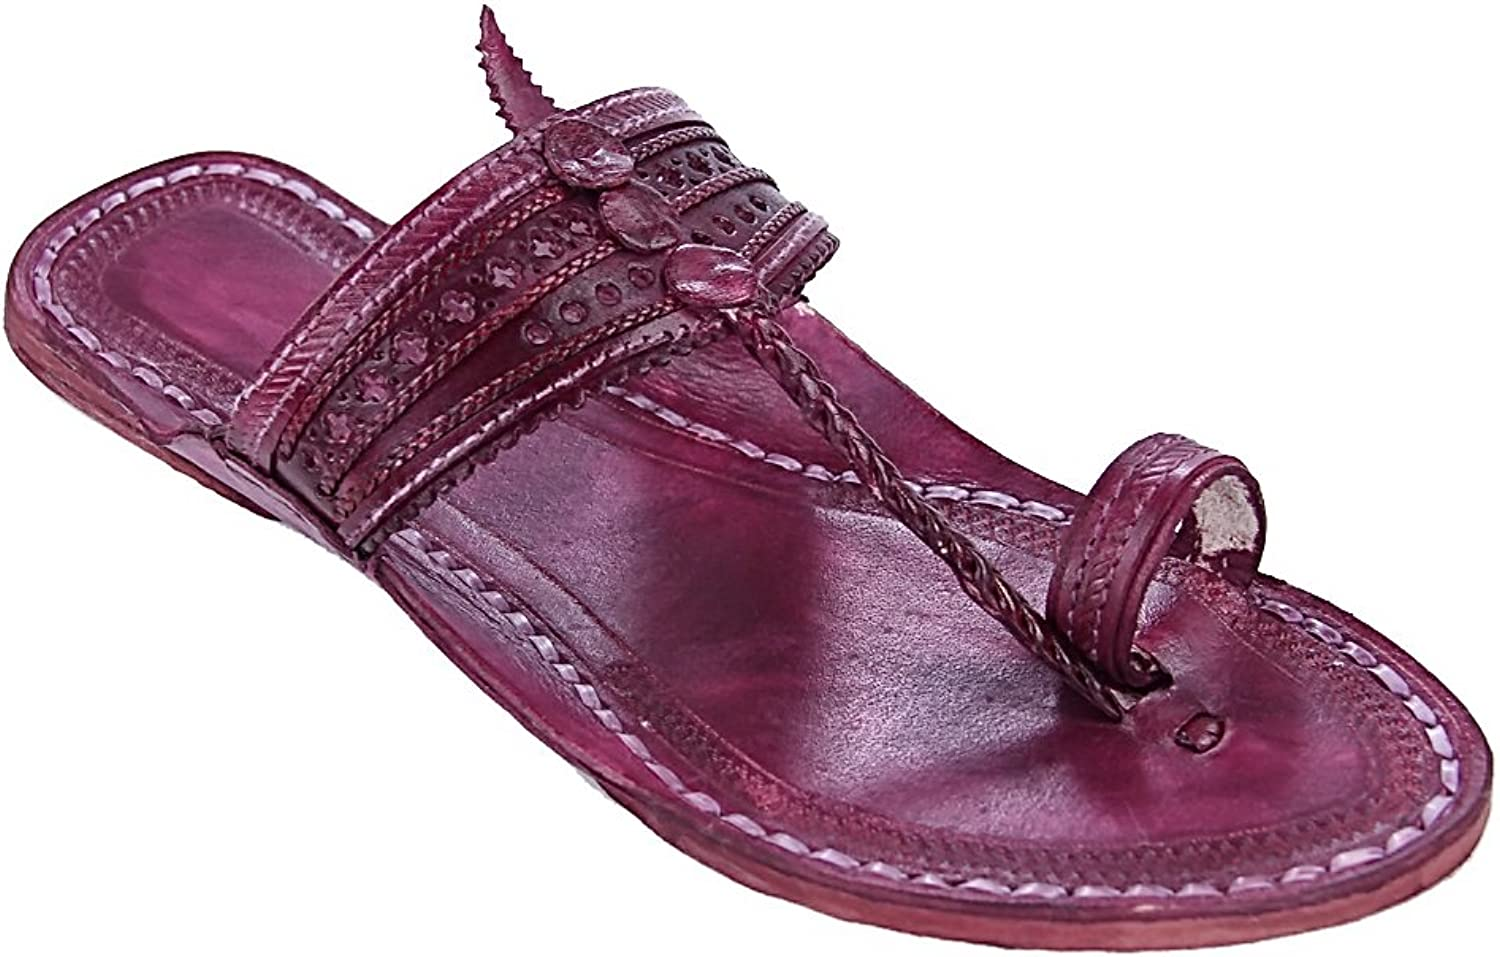 KOLHAPURI CHAPPAL Original Stunning Purple for Men Slipper Sandal